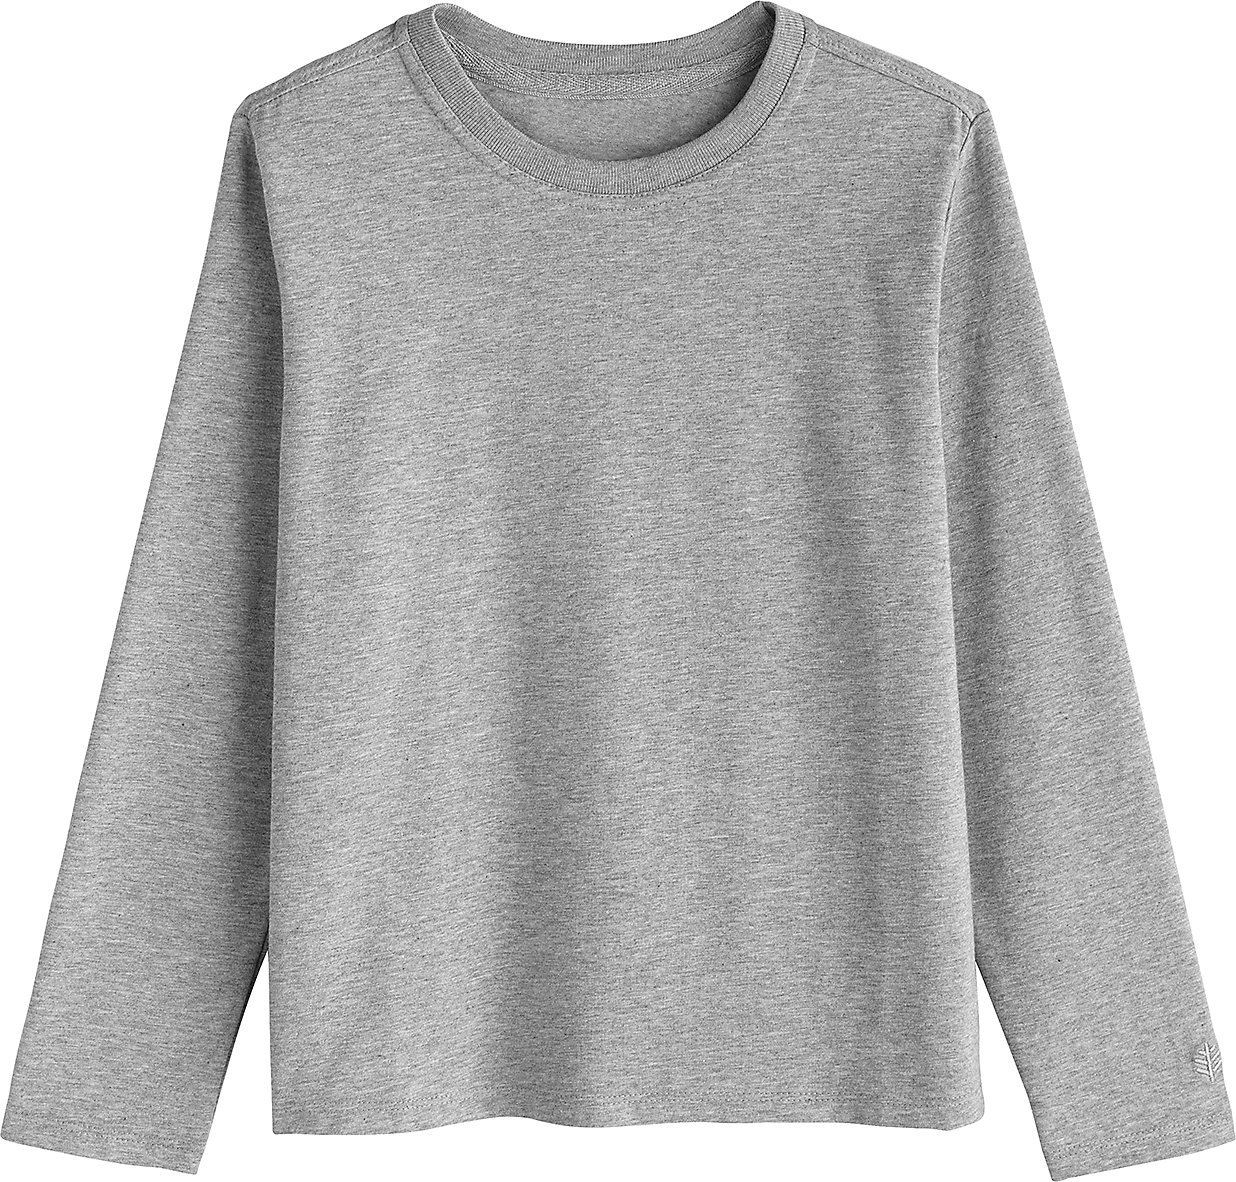 Coolibar UPF 50+ Kids' Long Sleeve Everyday T-Shirt - Sun Protective (Large- Grey Heather)